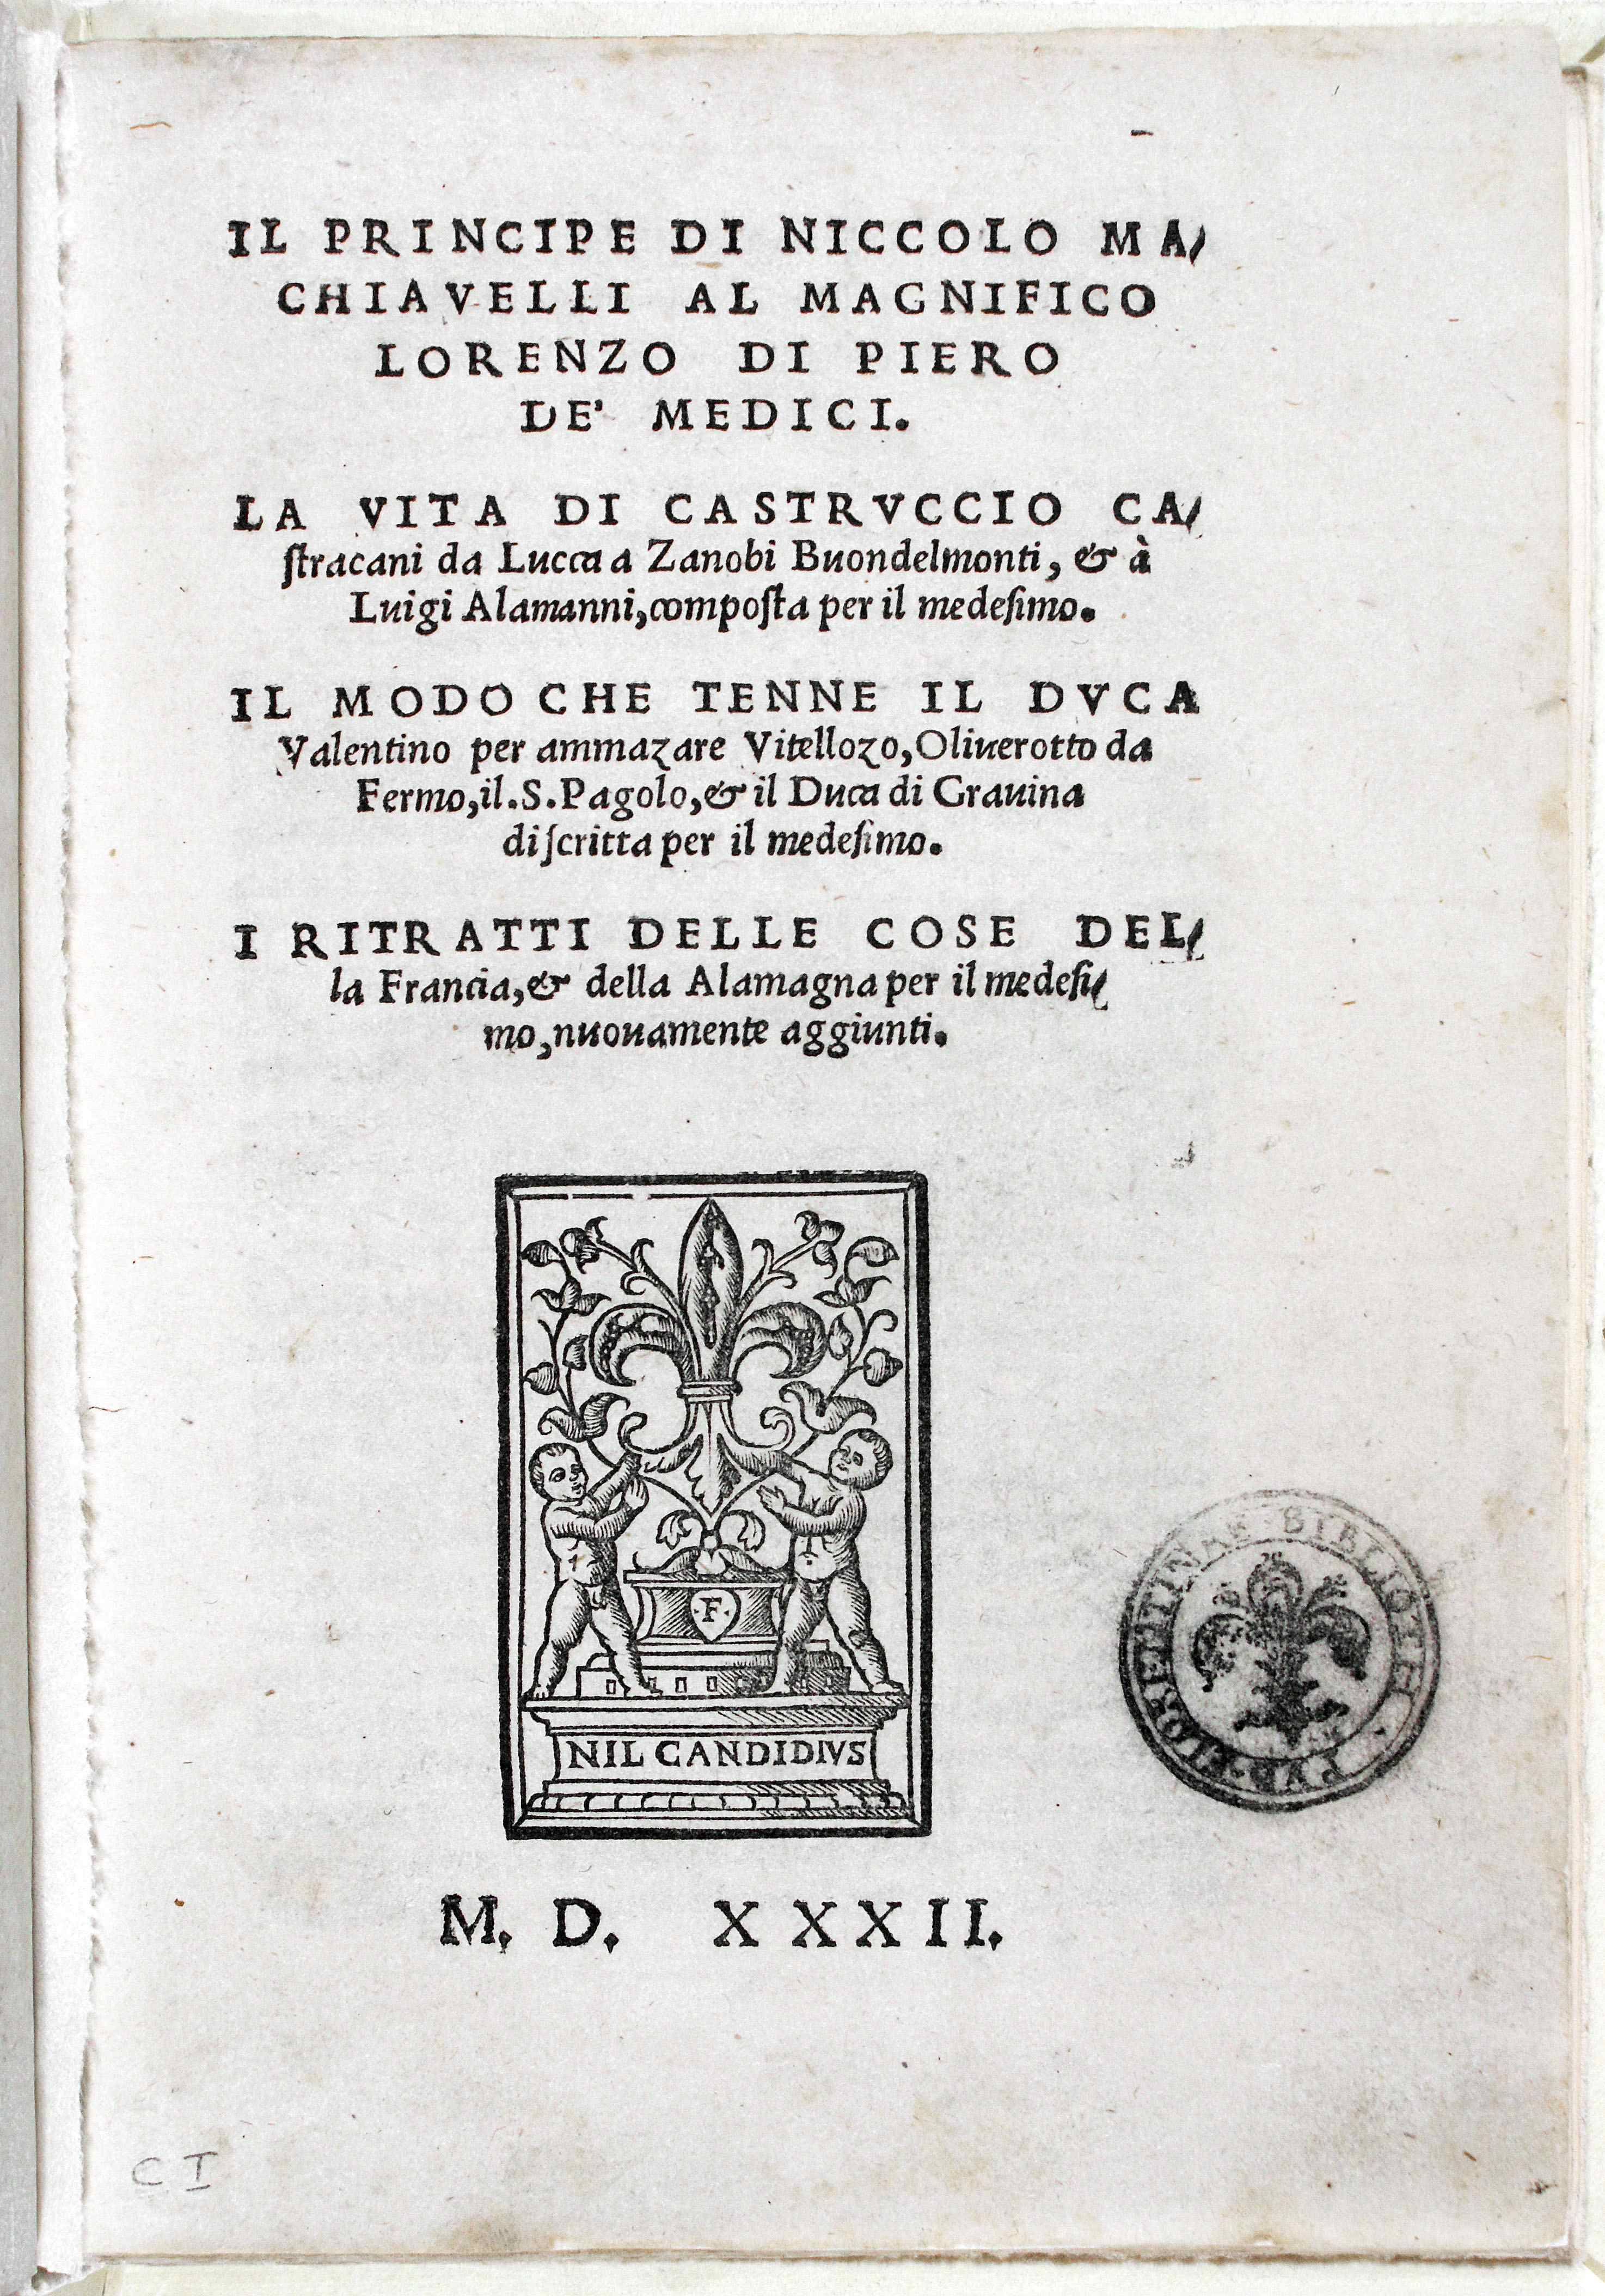 at    machiavelli    s     prince     still inspires love and fear   wbur    one of the first editions of the prince  published in florence in after machiavelli    s